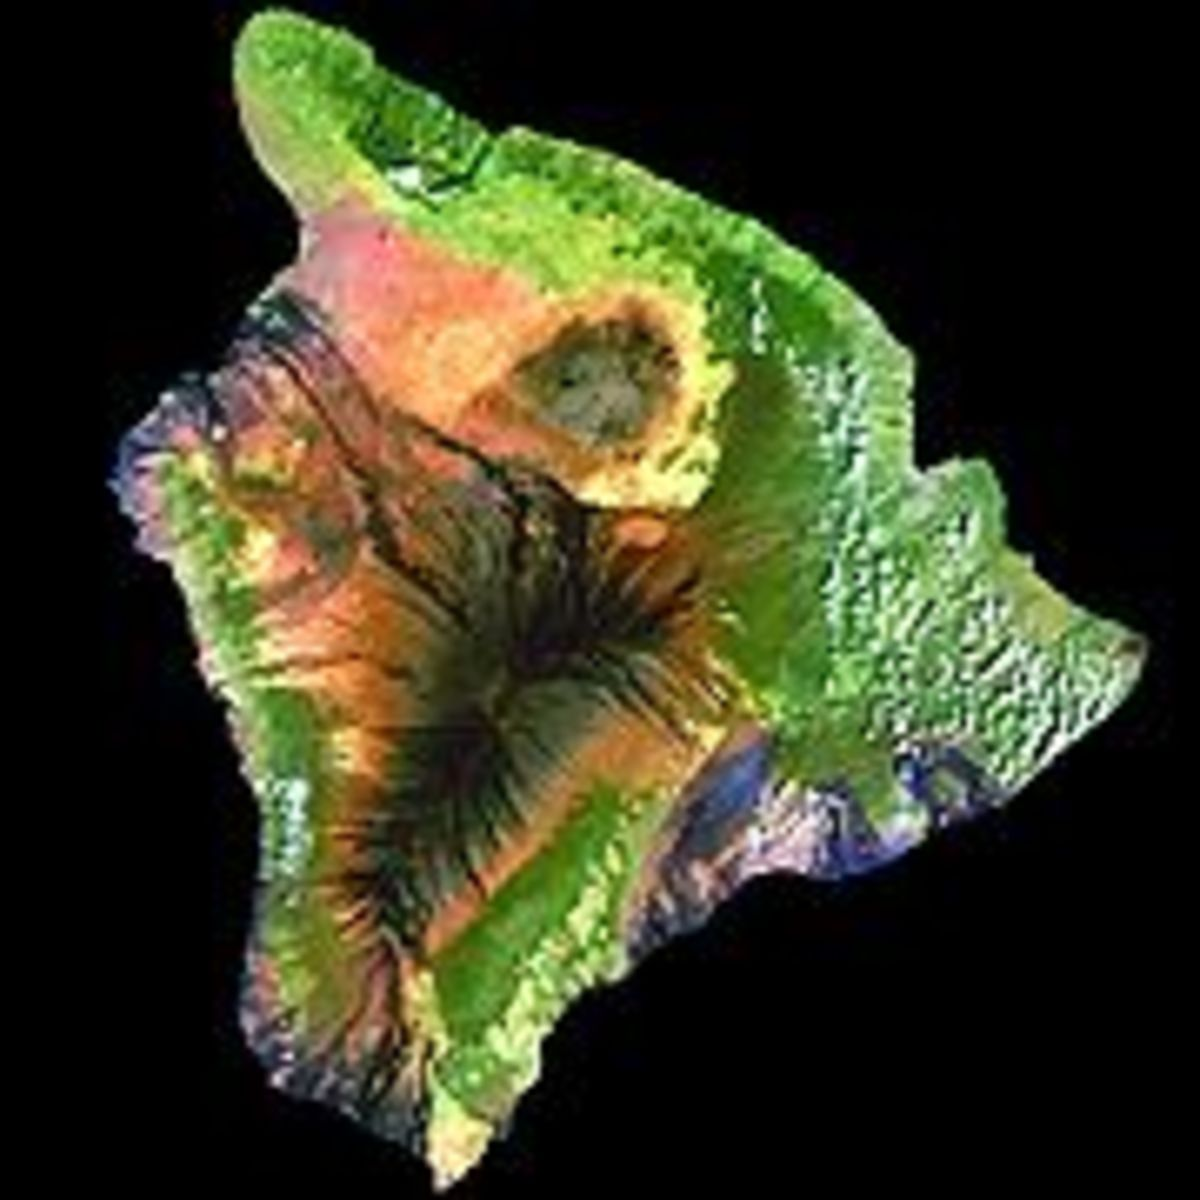 Big Island of Hawaii has a land area of 4,028.2 square miles